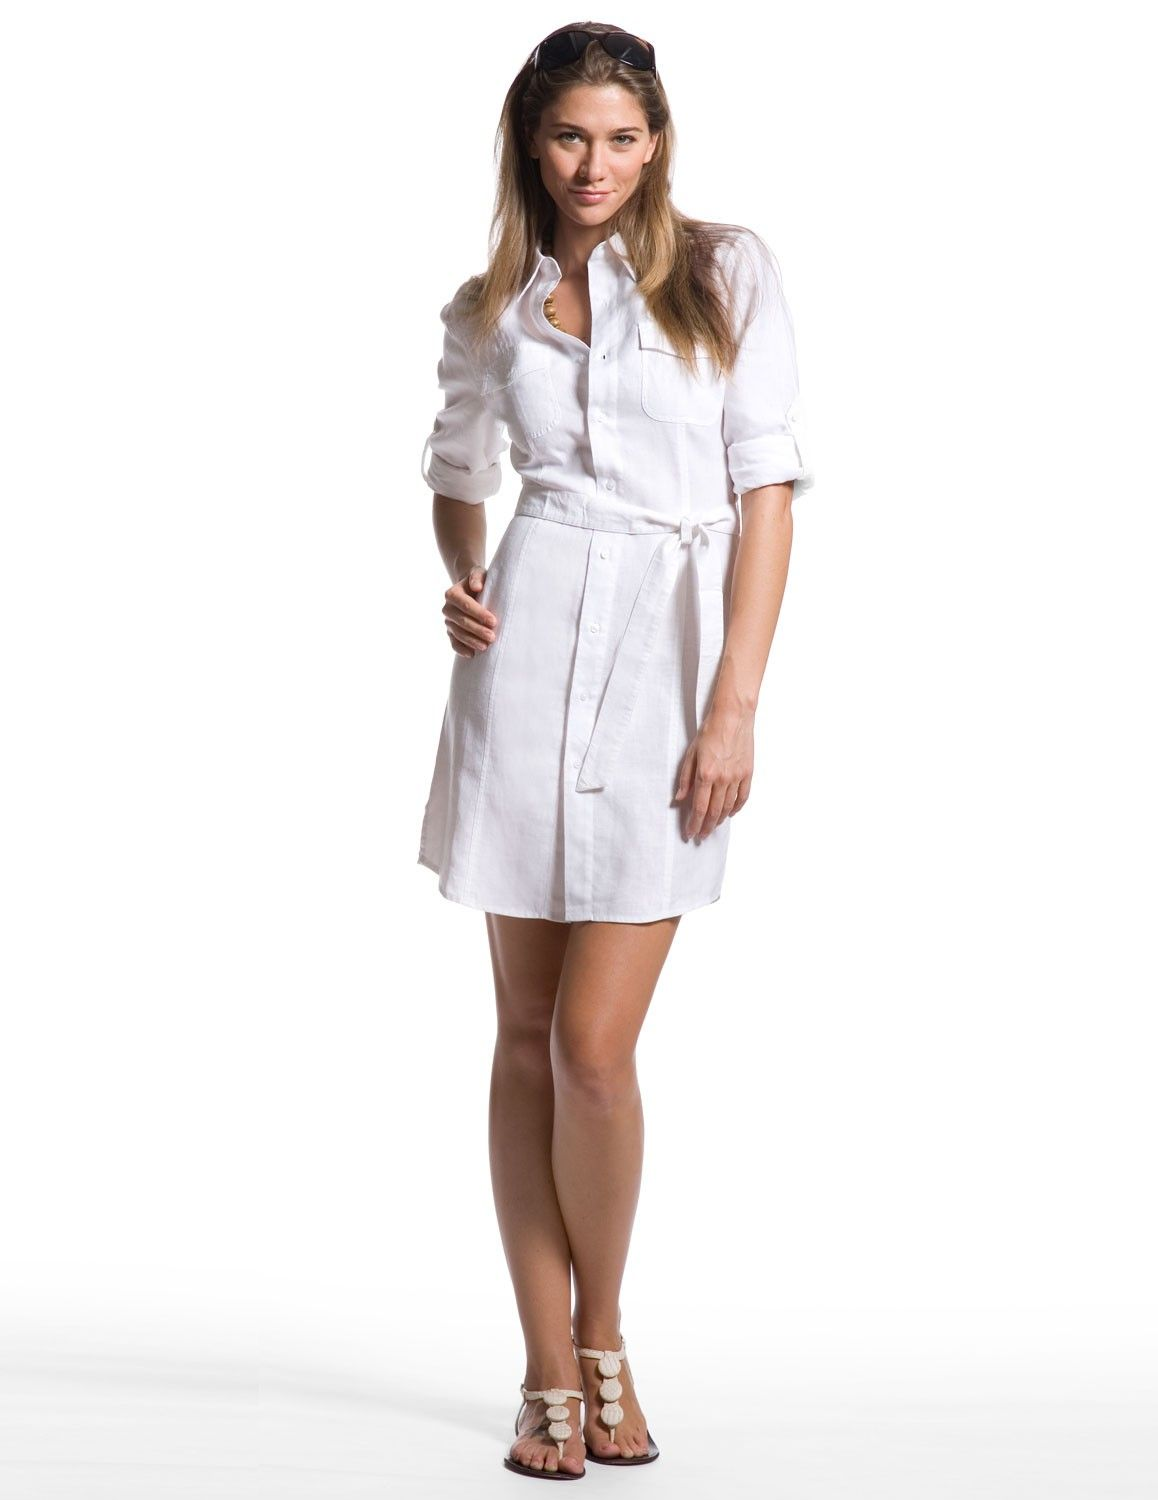 Island Companys White Safari Shirt Dress Is A Classic Dress Great